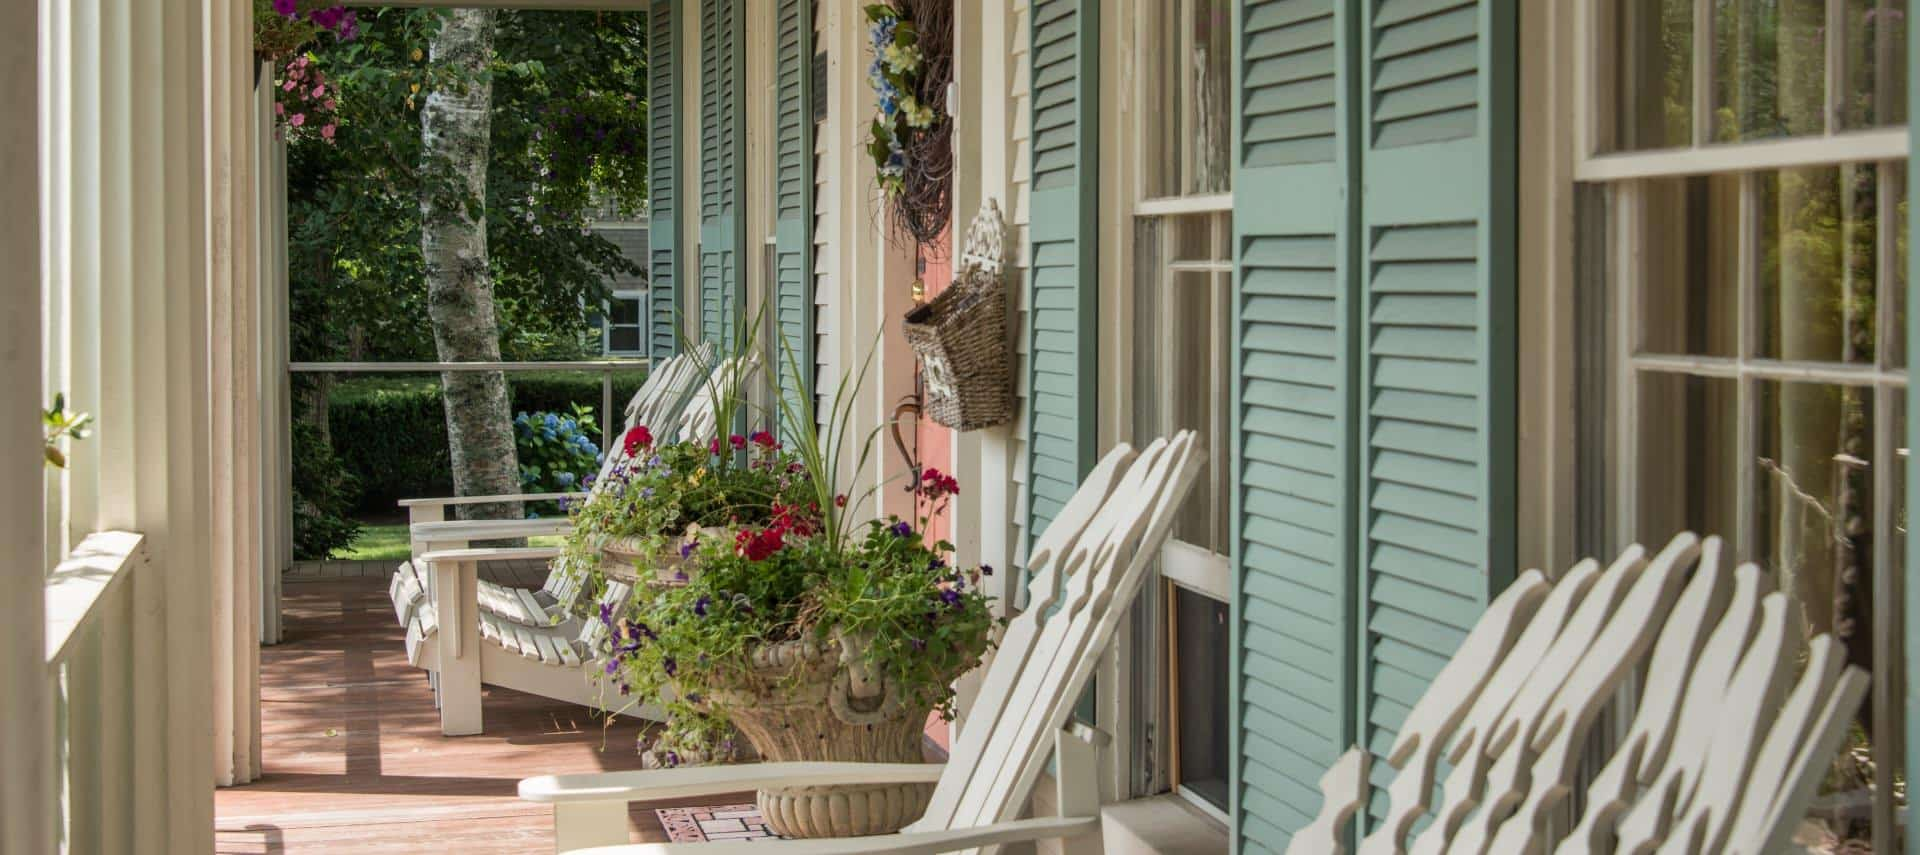 Front porch with multiple cream colored Adirondack chairs, potted planters with pink and purple flowers, salmon colored front door, and light green shutters